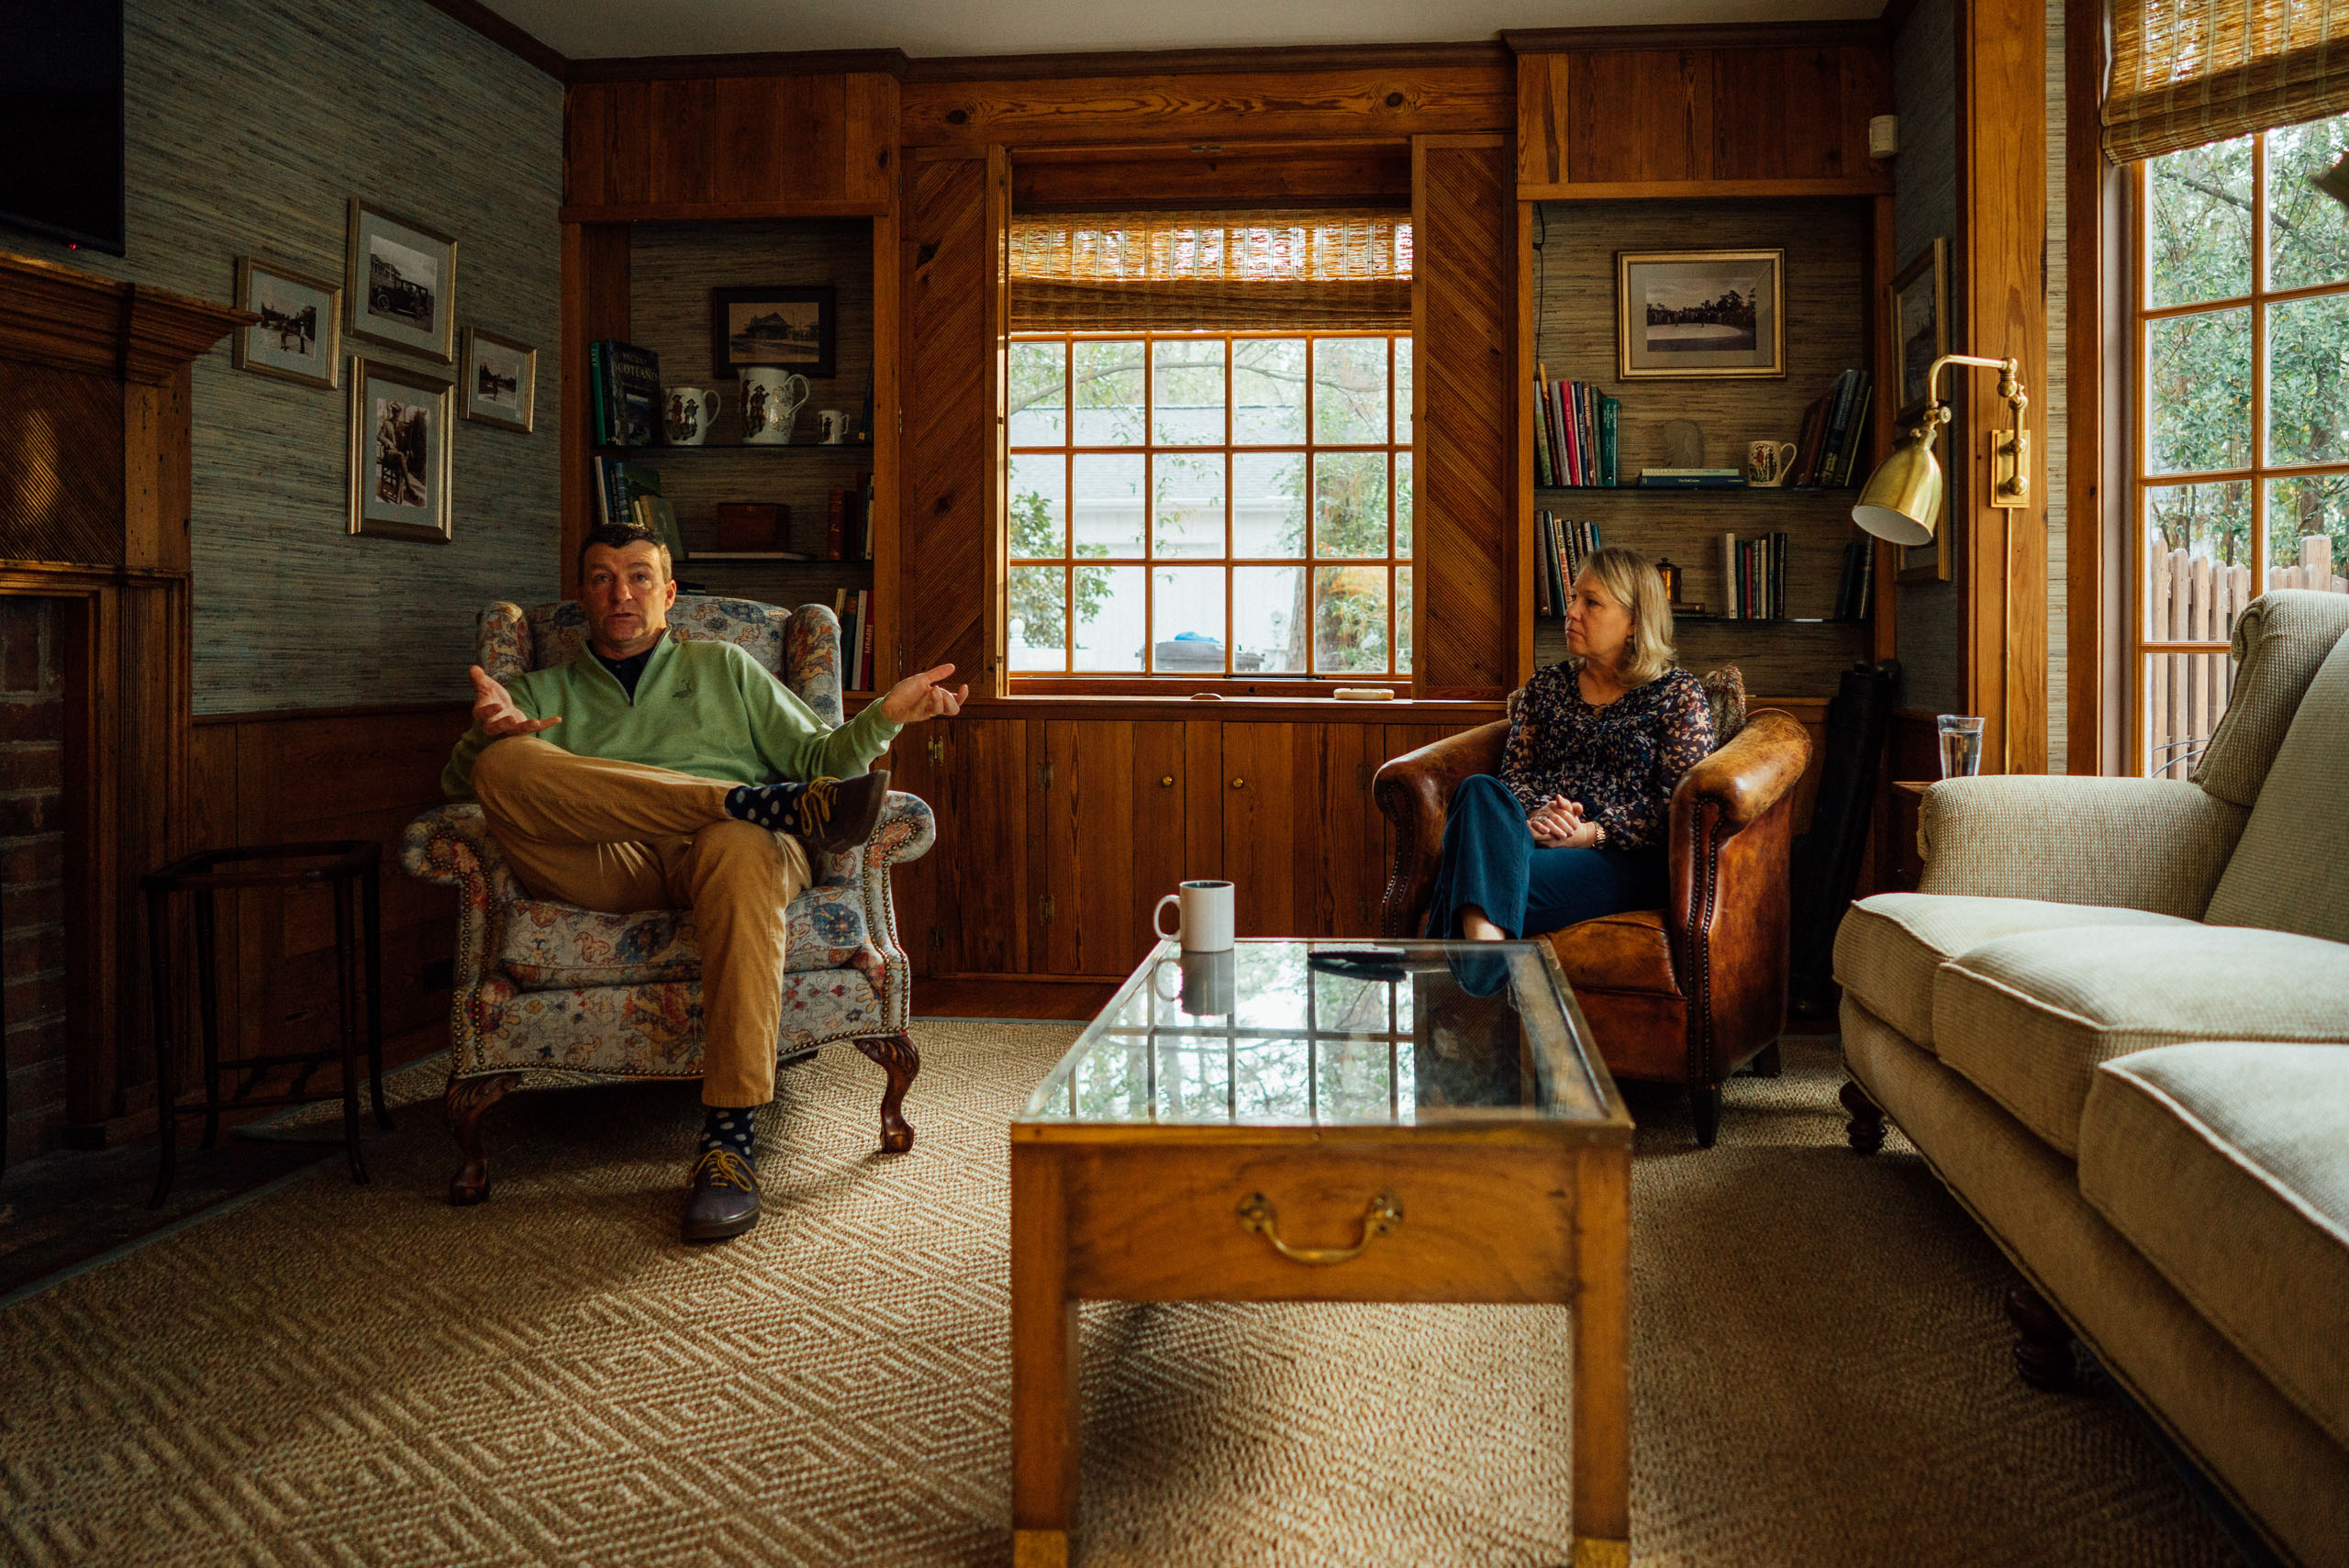 Like Ross and his wife before them, Gil Hanse and his wife, Tracey, see the value in creating a base camp they can call home. Even on hectic, far-flung projects like the Olympic course in Rio de Janeiro, Brazil, the Hanses have tried to bring some semblance of domestic tranquility to each job.